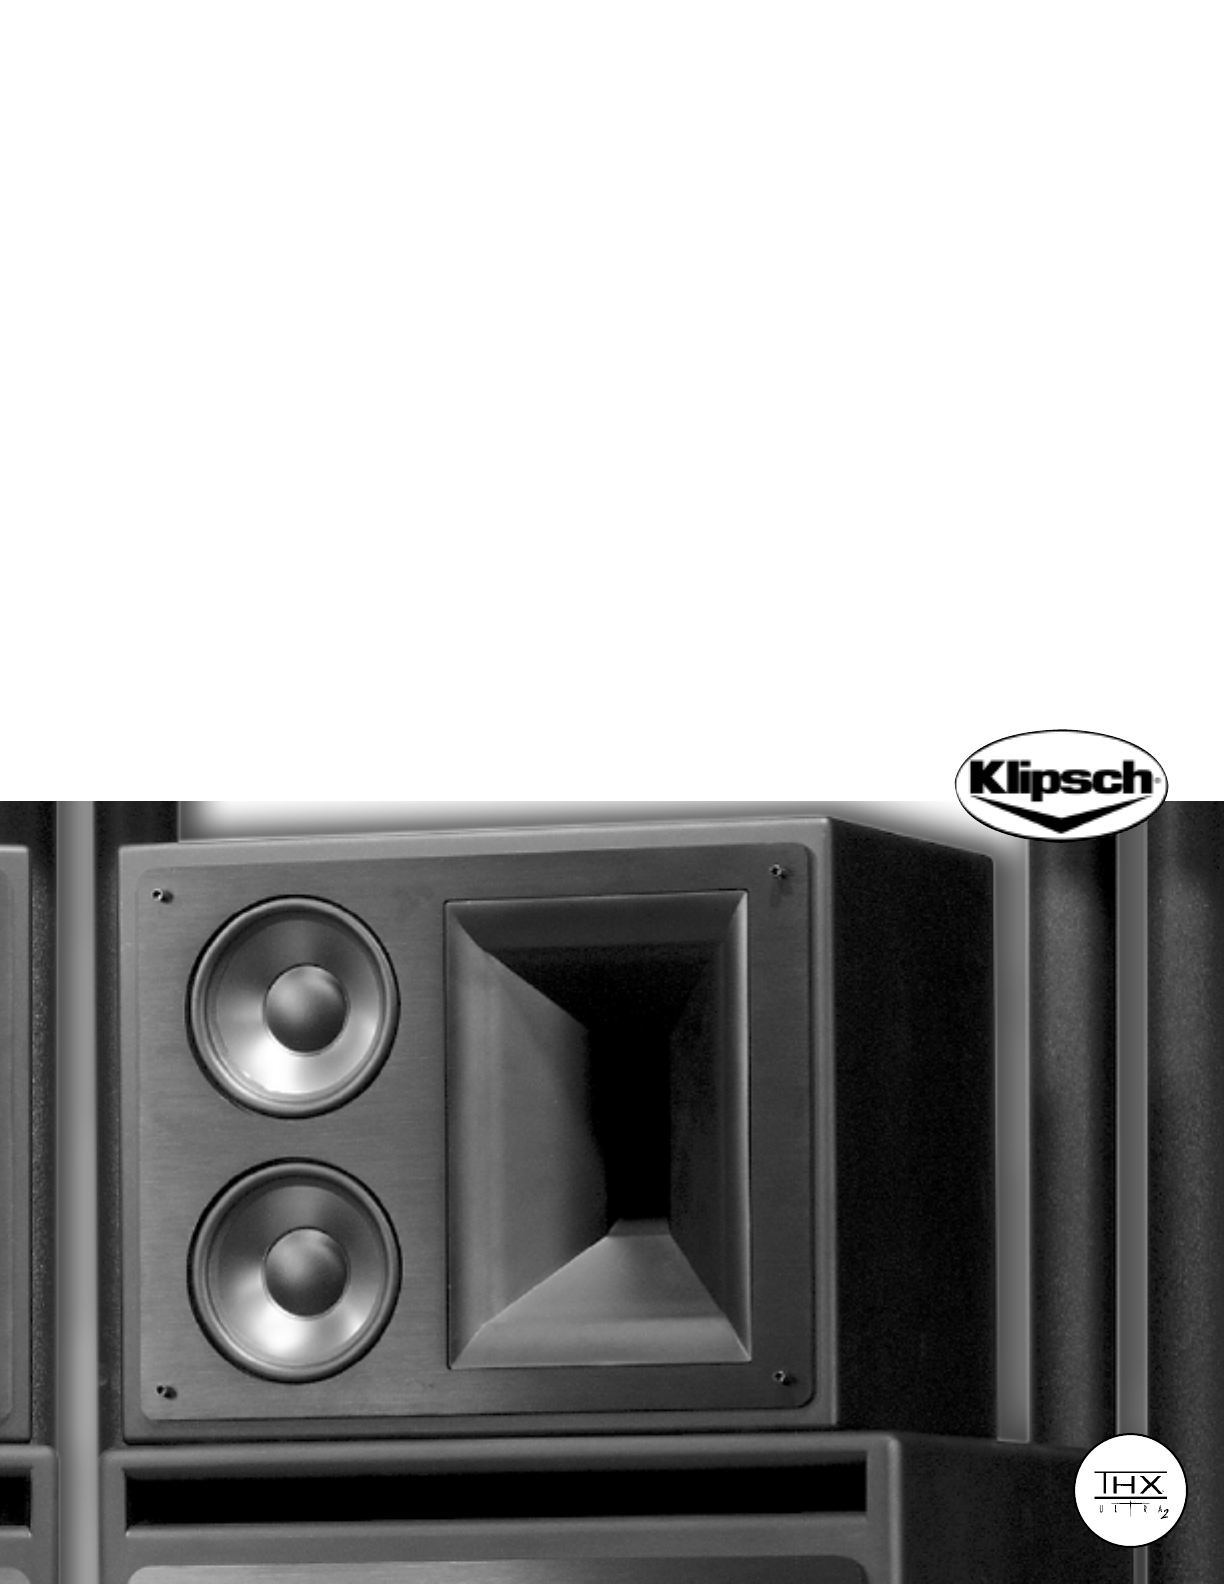 klipsch speaker kw 120 thx user guide. Black Bedroom Furniture Sets. Home Design Ideas